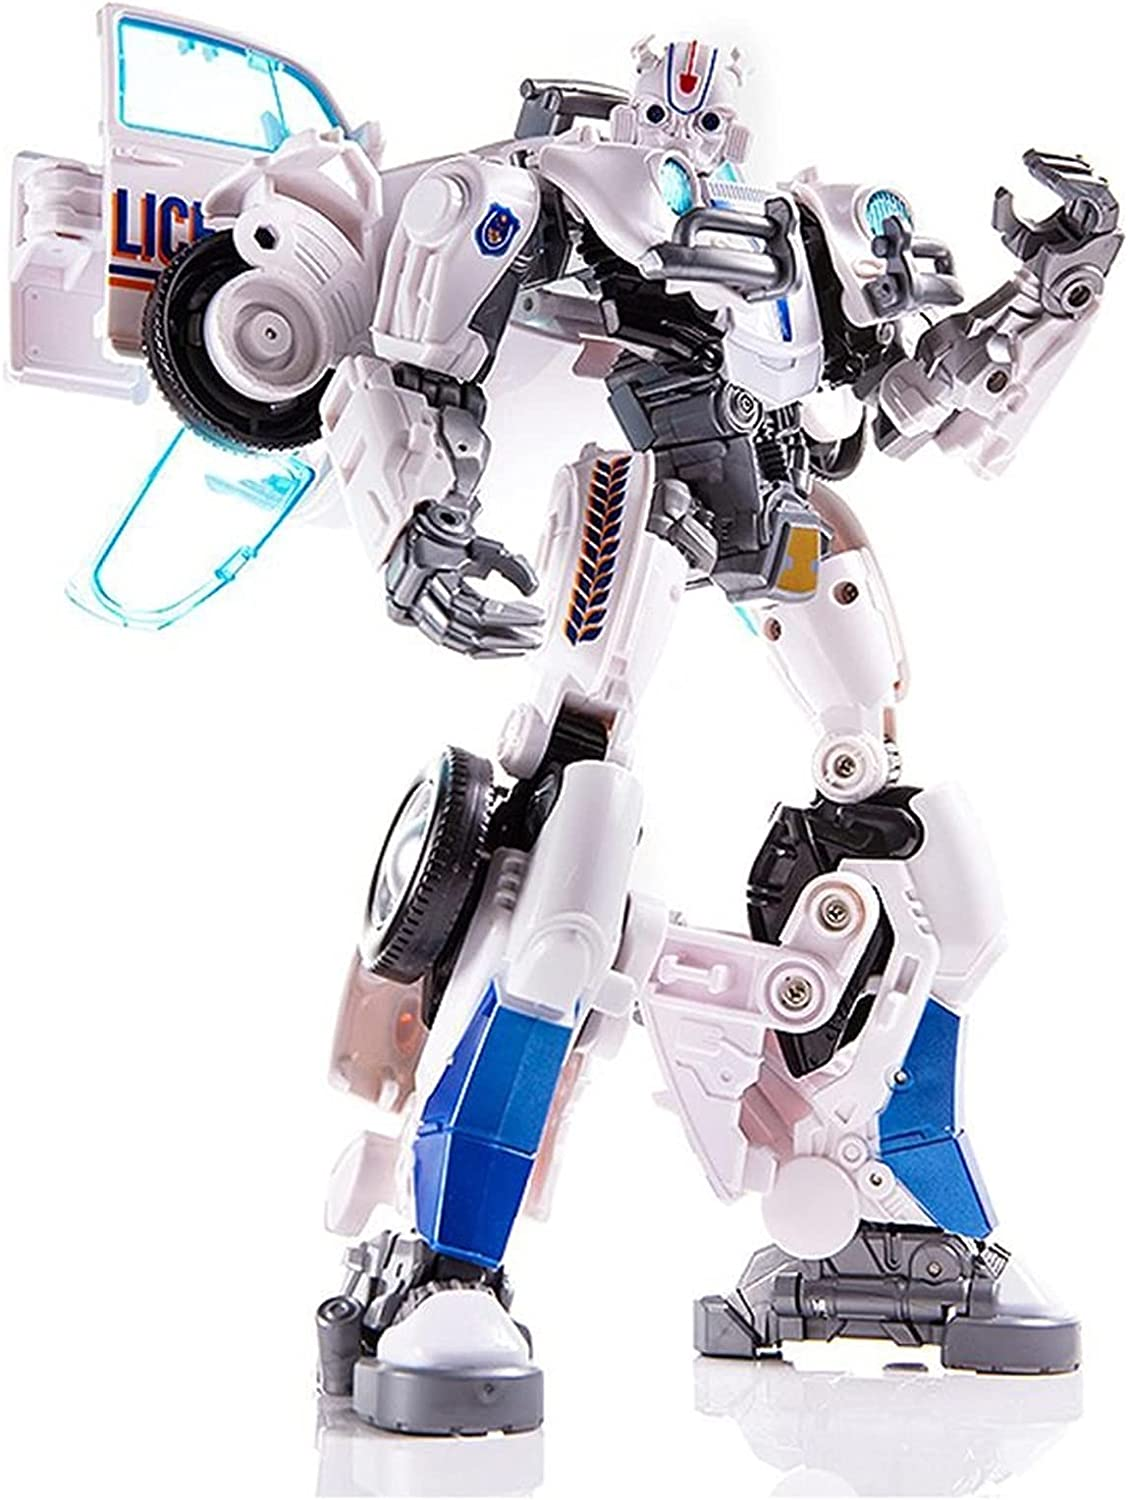 LQIPPOE Manual Deformation Toy White Bumblebee Ranking TOP3 Albuquerque Mall car G Robot